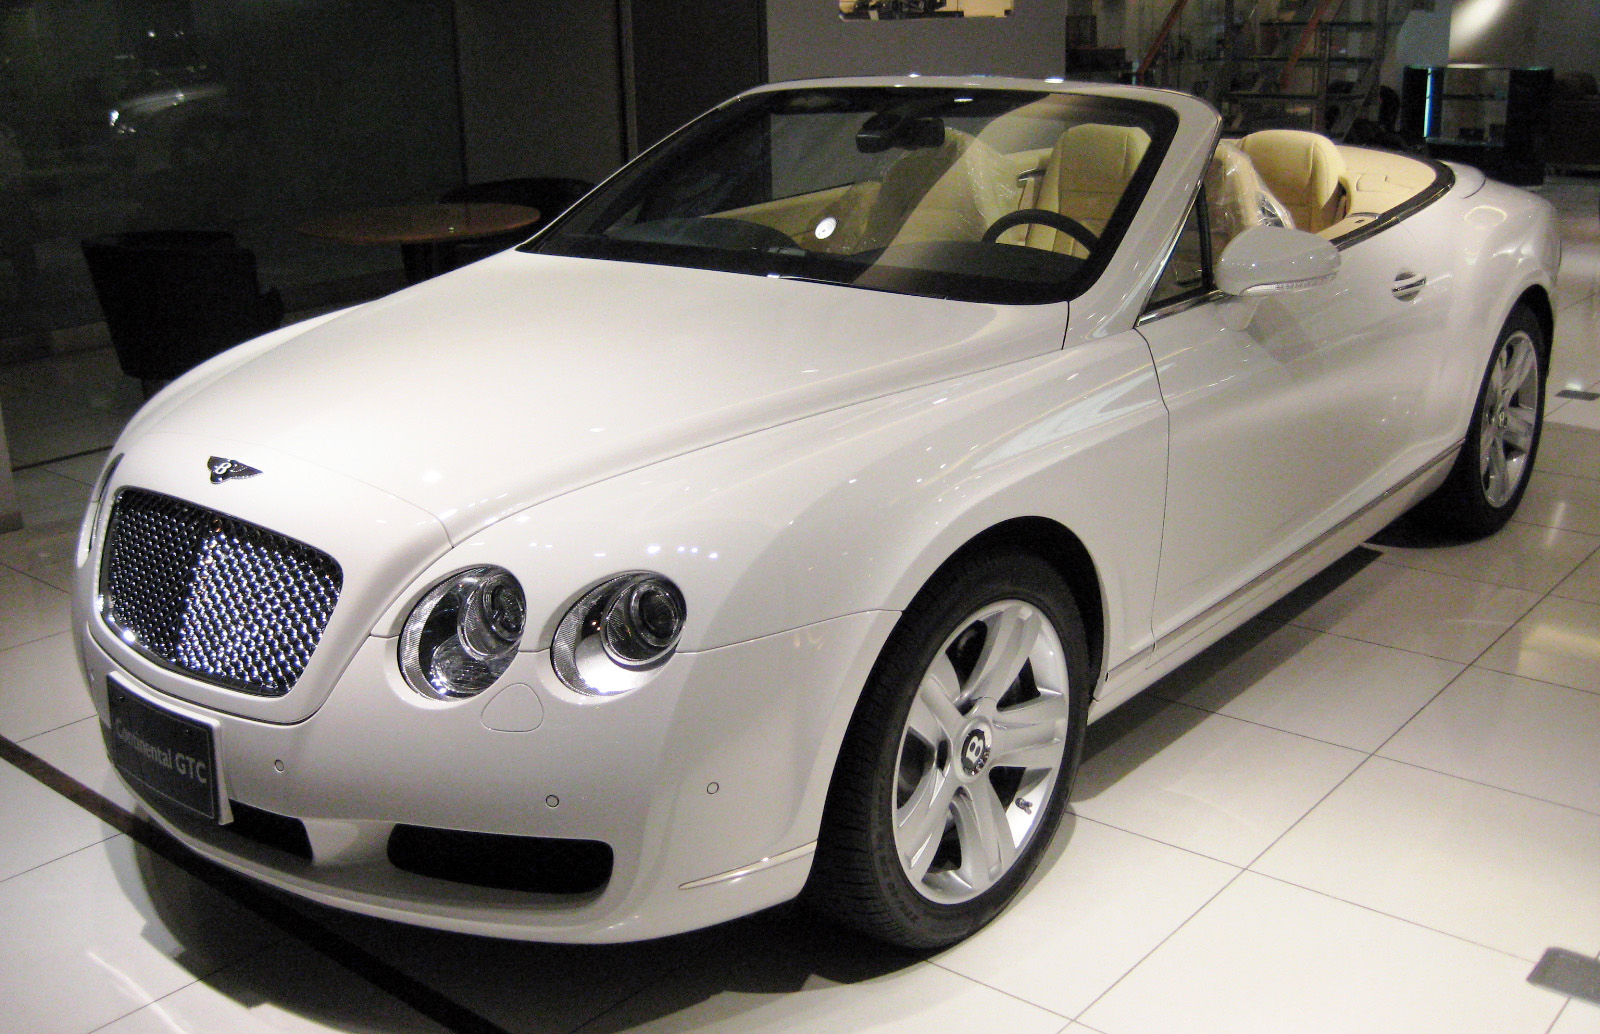 prices convertible gt coupe international overview bentley intl continental specs bbcqqhi price